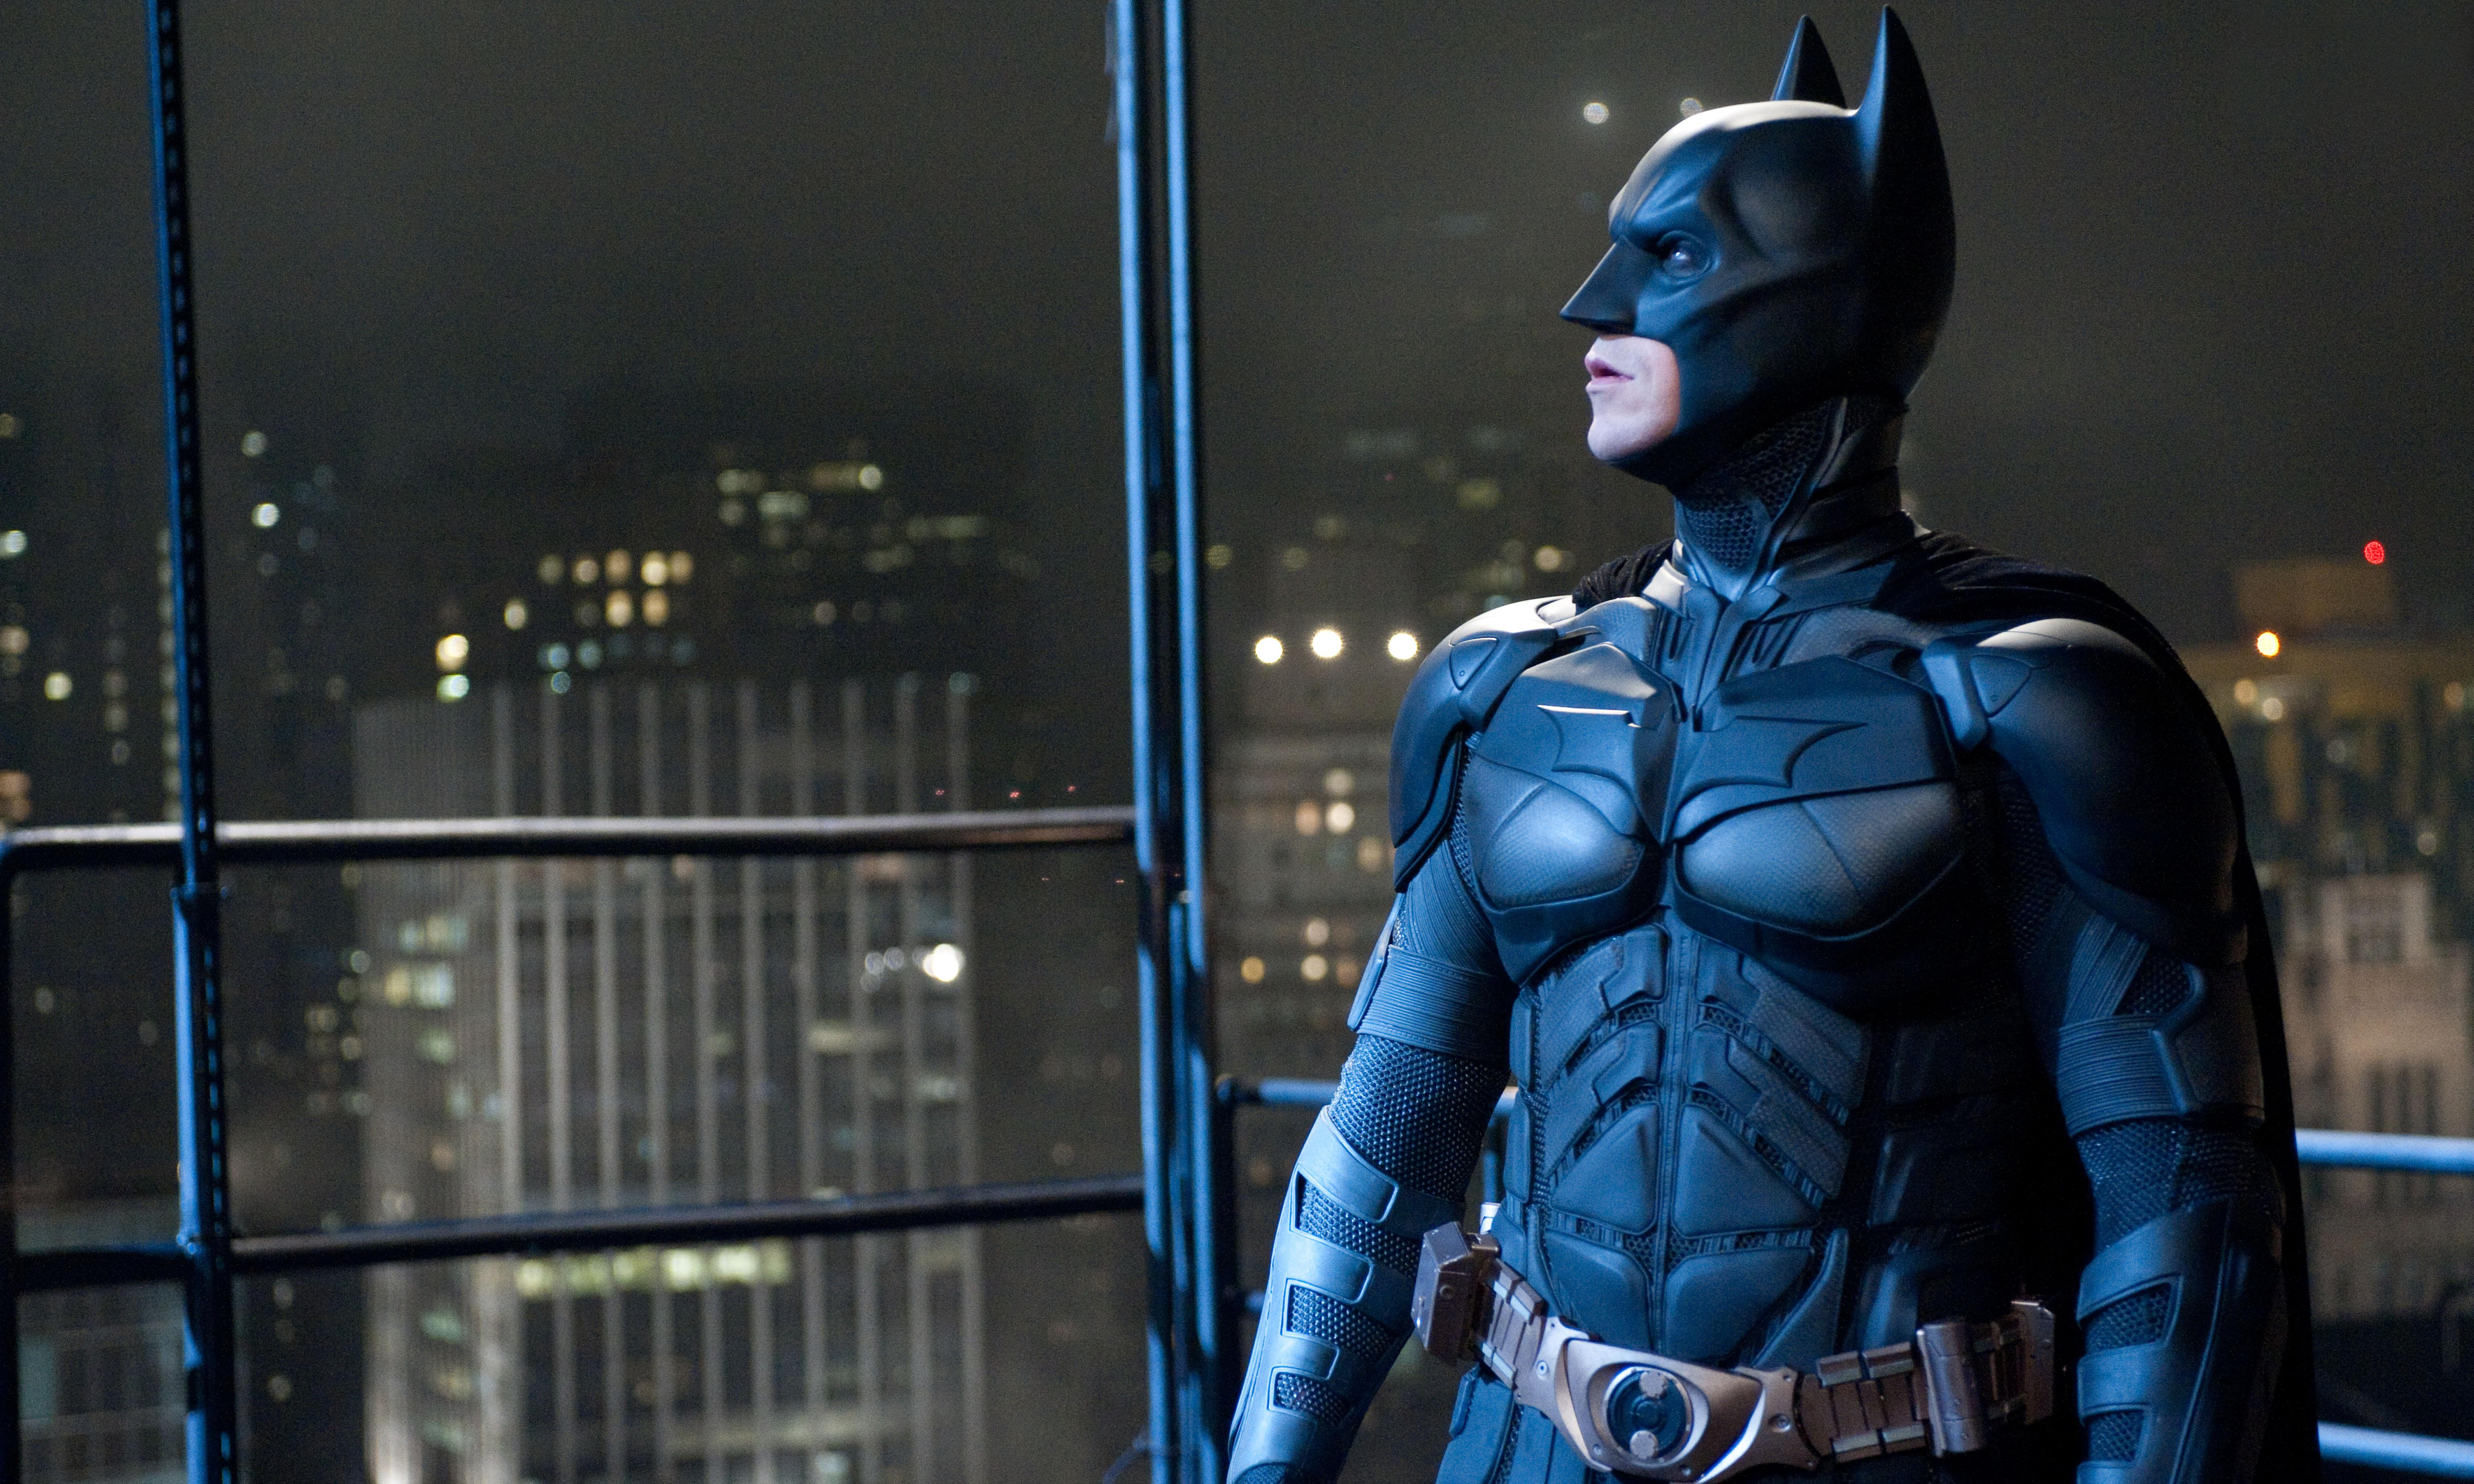 Christian Bale's new Marvel role could pitch him as the anti-Batman